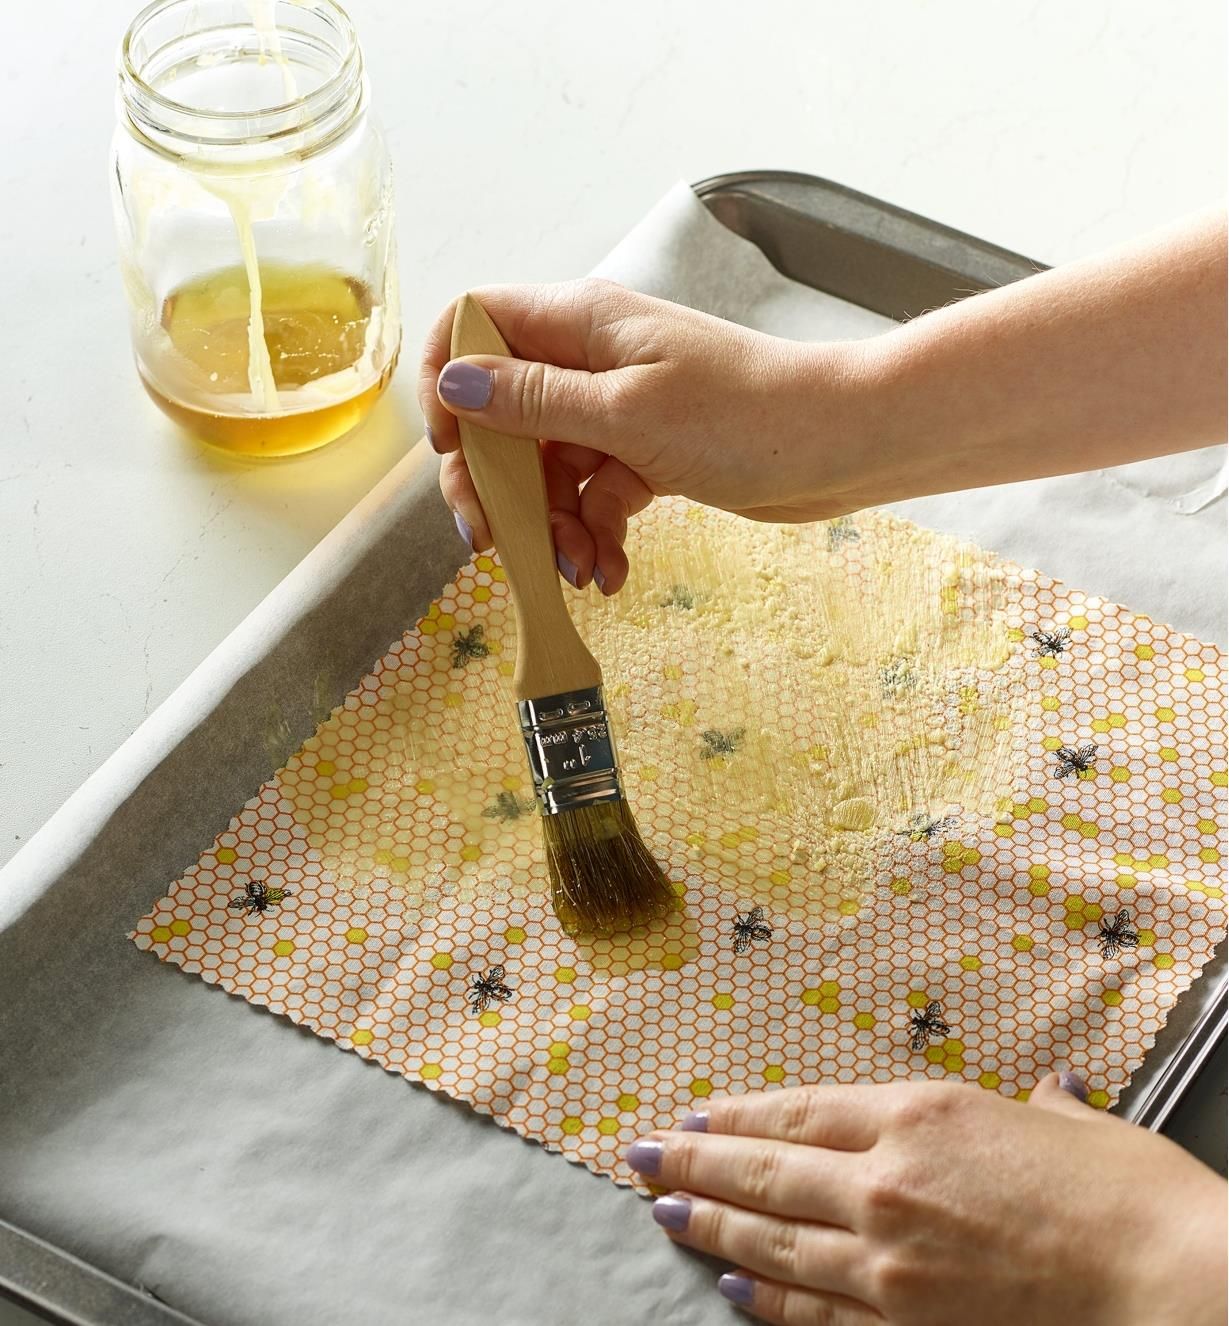 Brushing wax on to a cloth to create a beeswax wrap